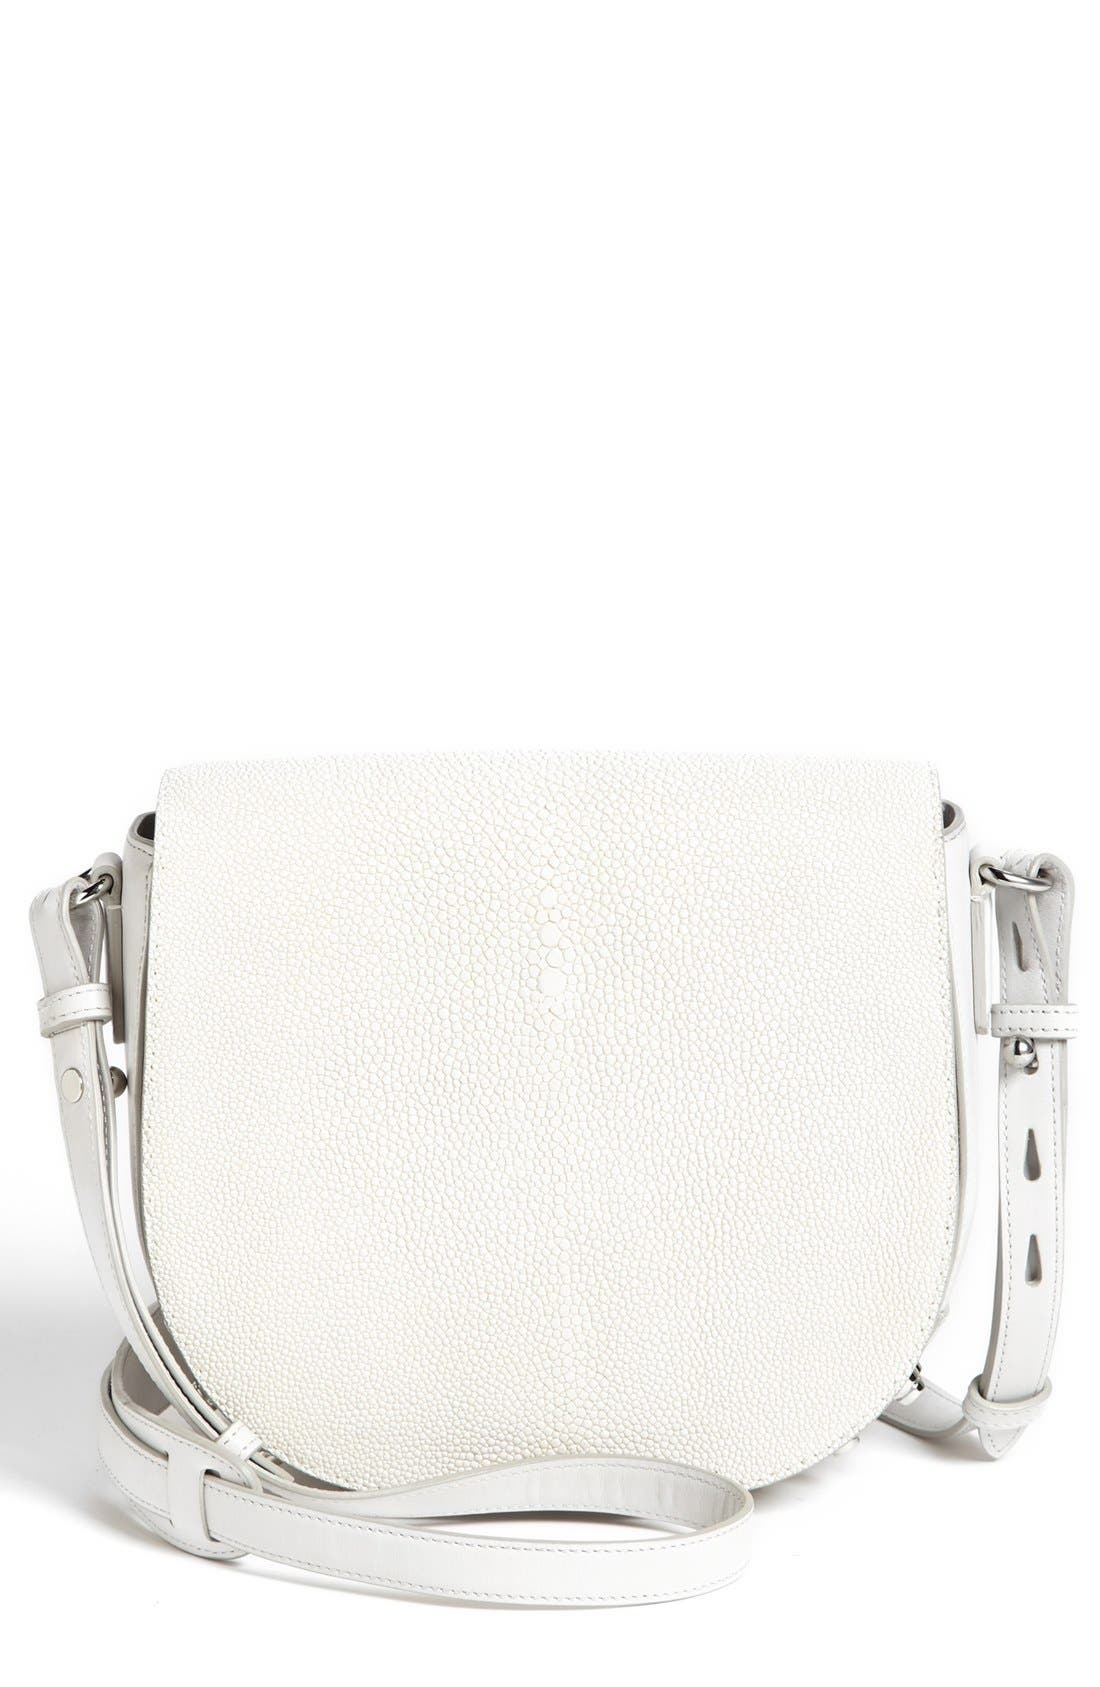 Alternate Image 1 Selected - Alexander Wang 'Lia Stingray - Small' Leather Crossbody Bag